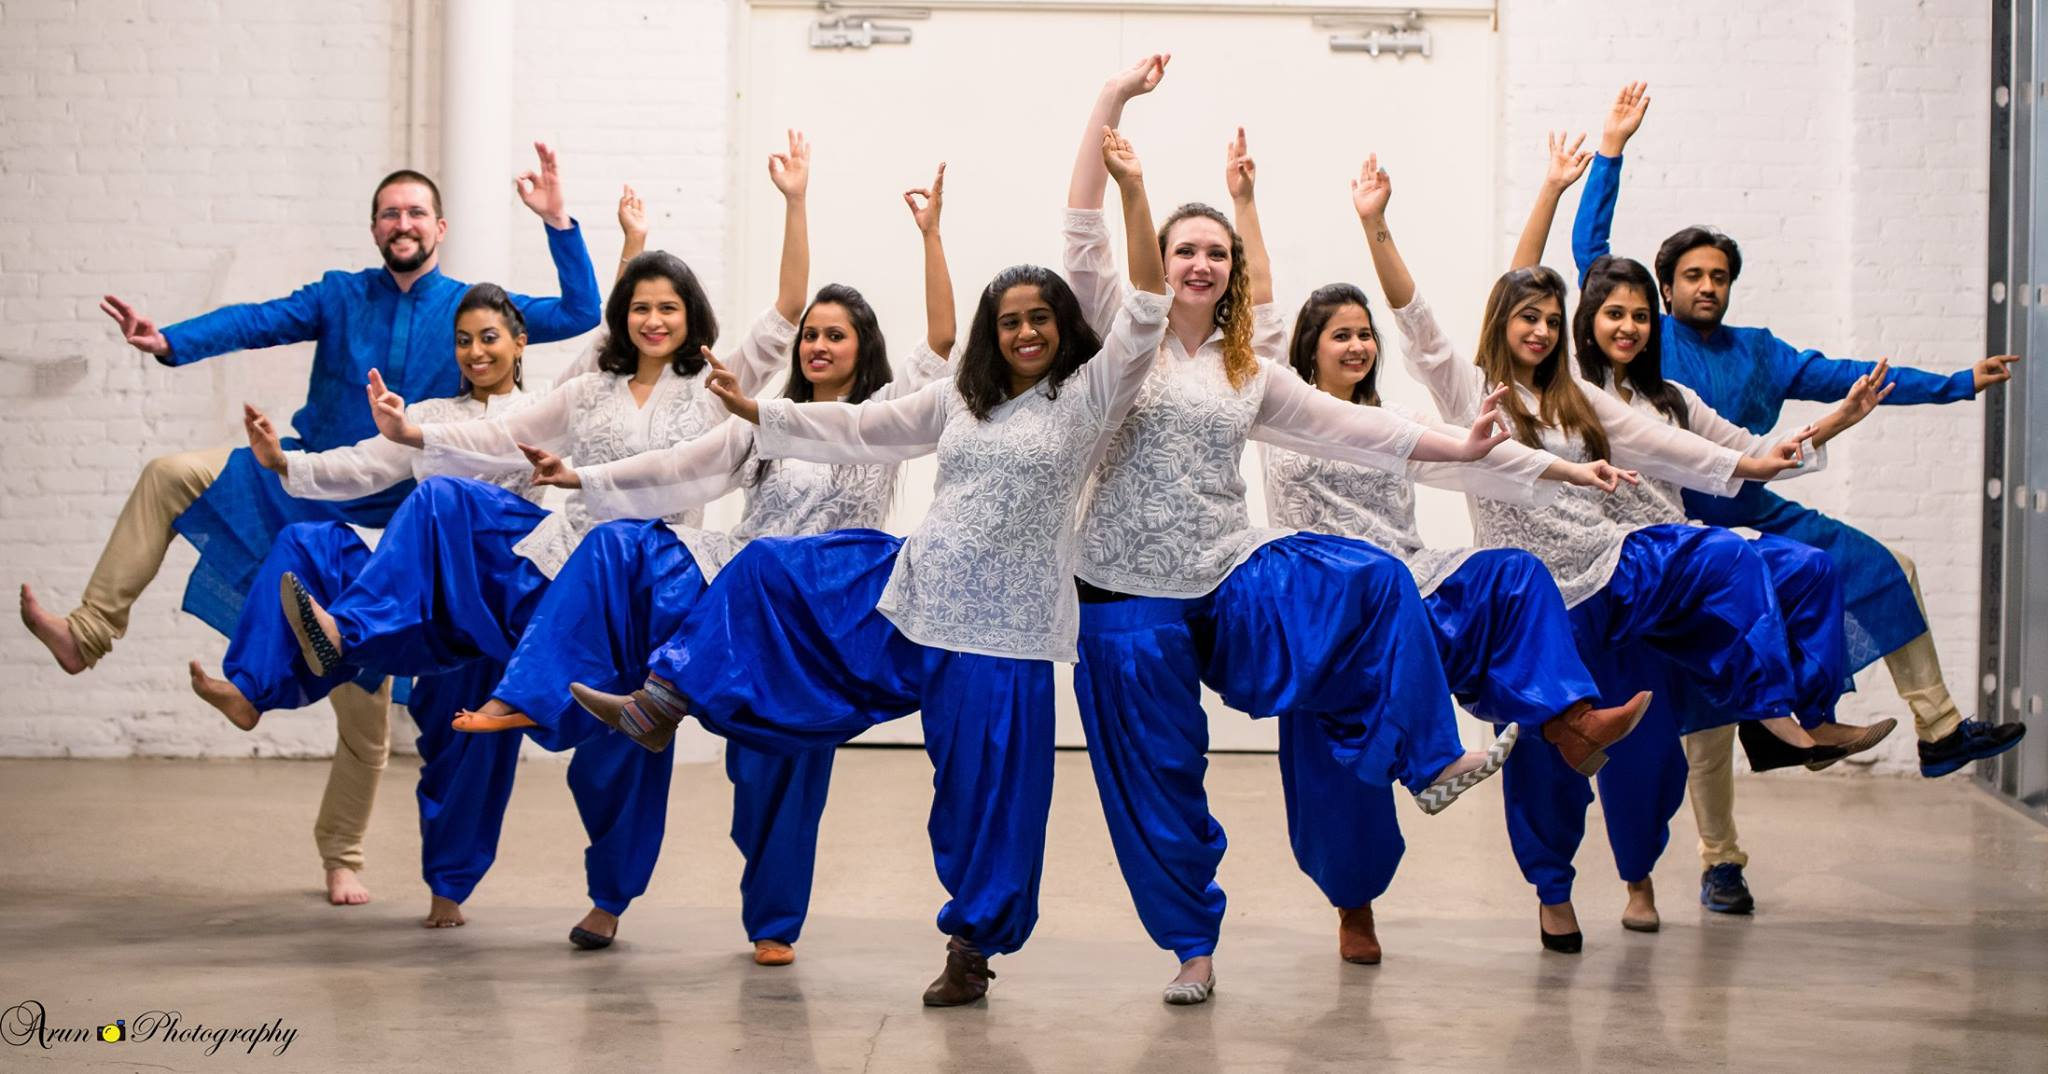 Our Mission - We celebrate cultural diversity and social harmony in the community through the joyful medium of dance, performing arts, and related South Asian cultural traditions.